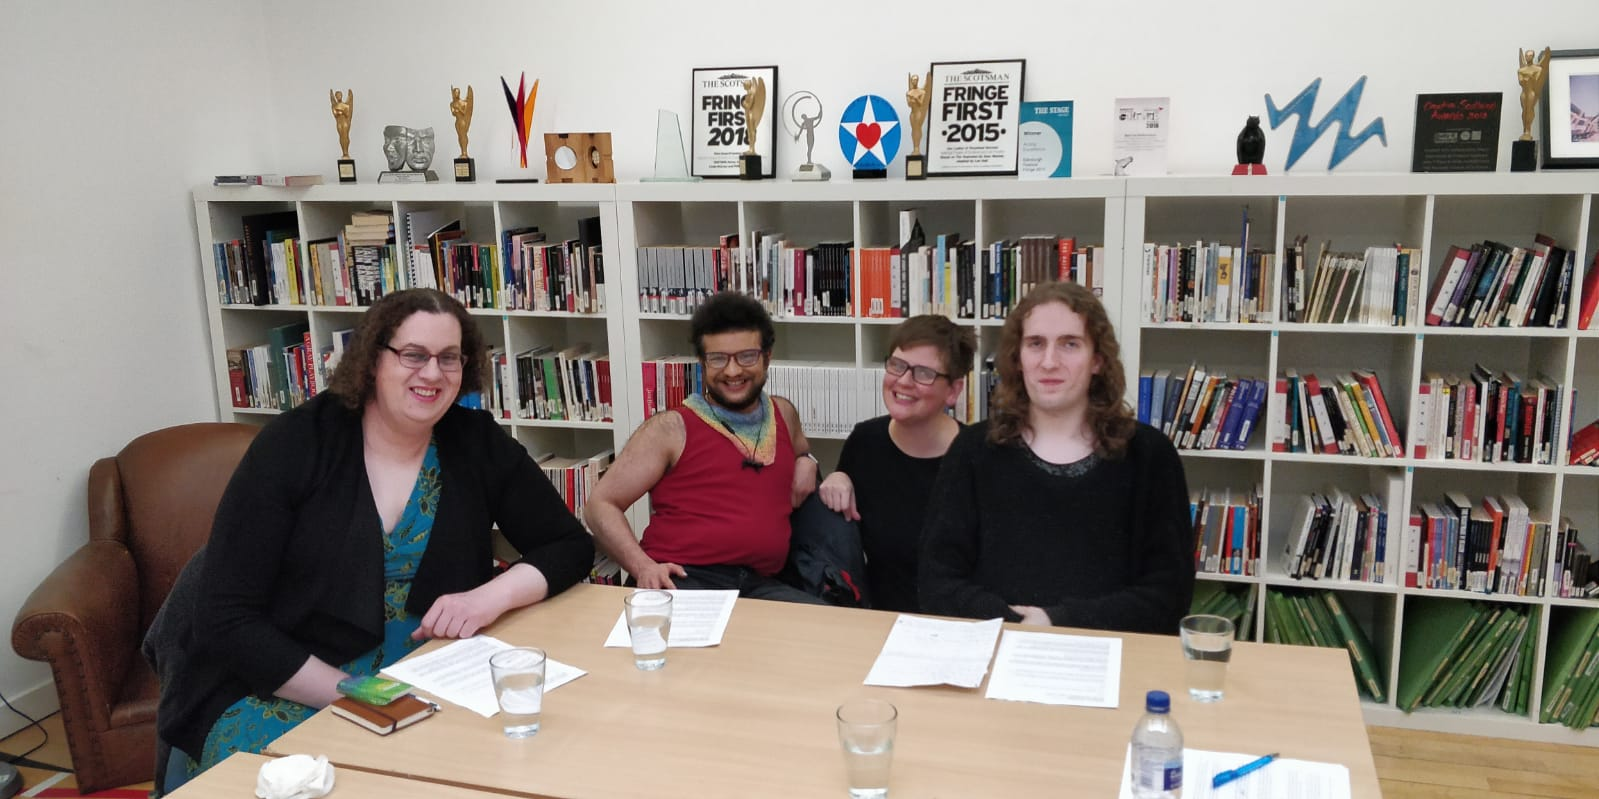 Four people sitting together round a table, smiling at the camera. Cate Lauder is a white woman with shoulder-length brown hair and glasses, wearing a blue dress and cardigan. Shafiq Ghafoor is a brown non-binary person with short, curly brown hair, a beard and glasses. They wear a red vest and rainbow scarf. Sandra Alland is a white person with short brown hair and black glasses, wearing a long-sleeved black shirt. Mattie Kennedy is a white femme with shoulder-length wavy hair, also wearing a long-sleeved black top. They sit in front of shelves of books and awards.